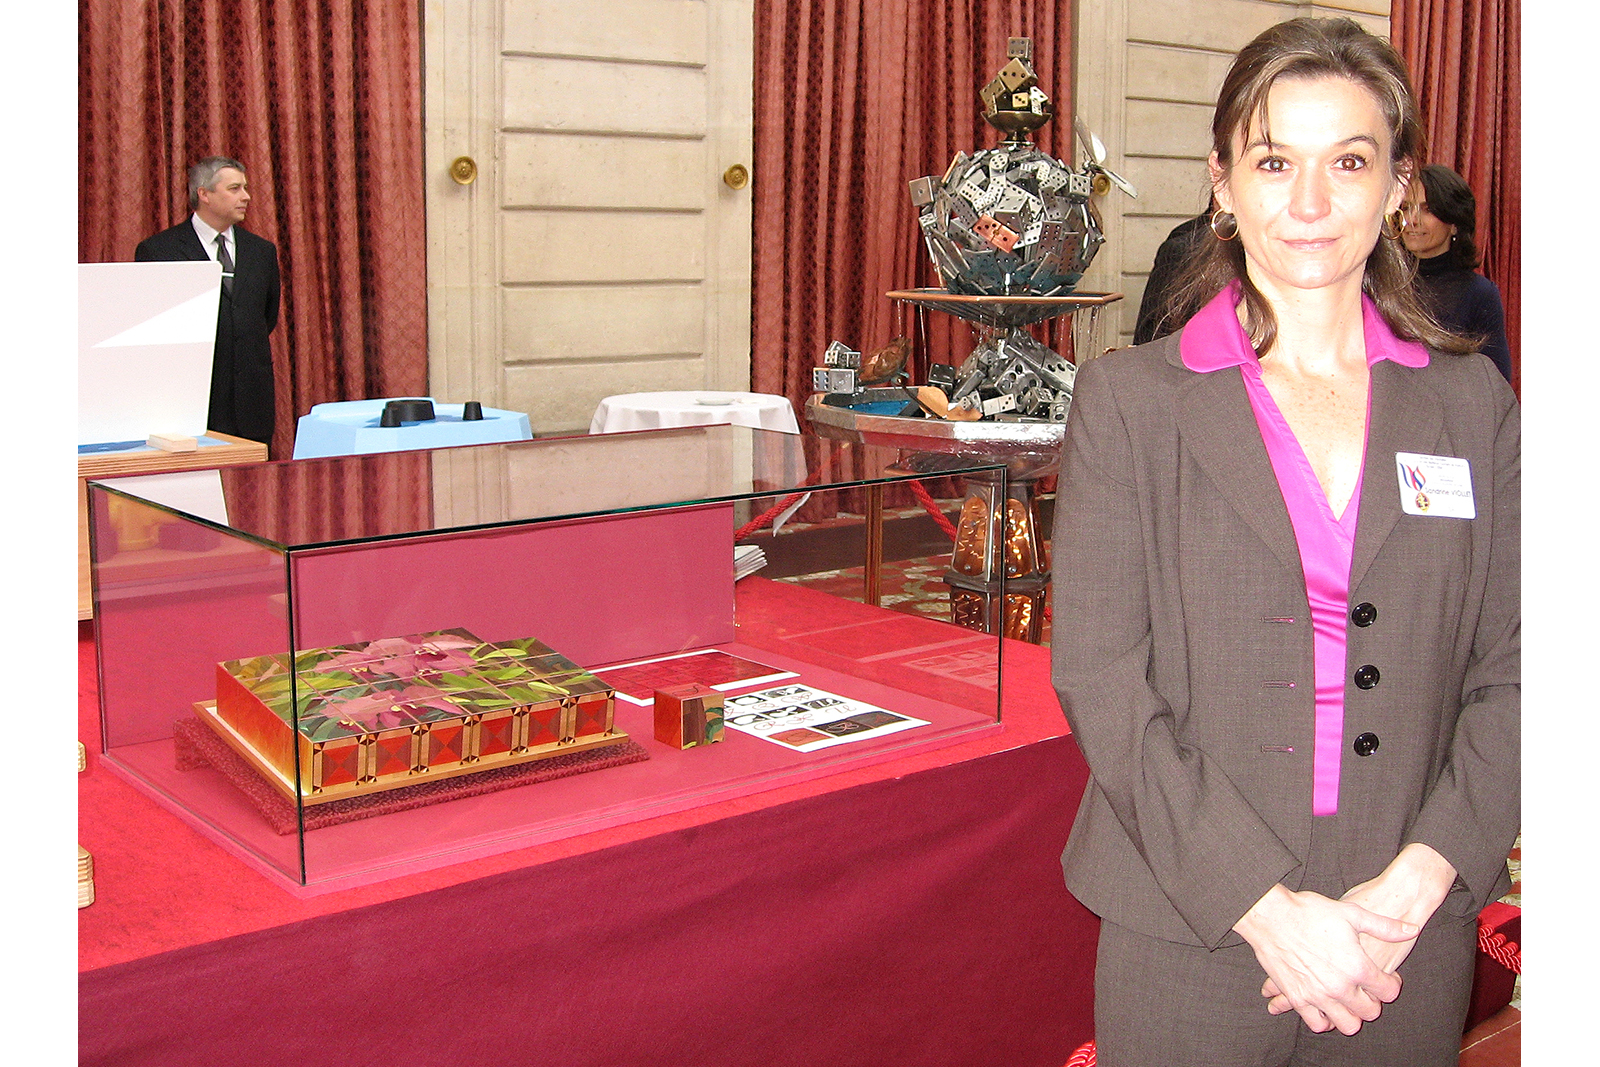 Sandrine with her masterpiece on display at the Elysee French palace